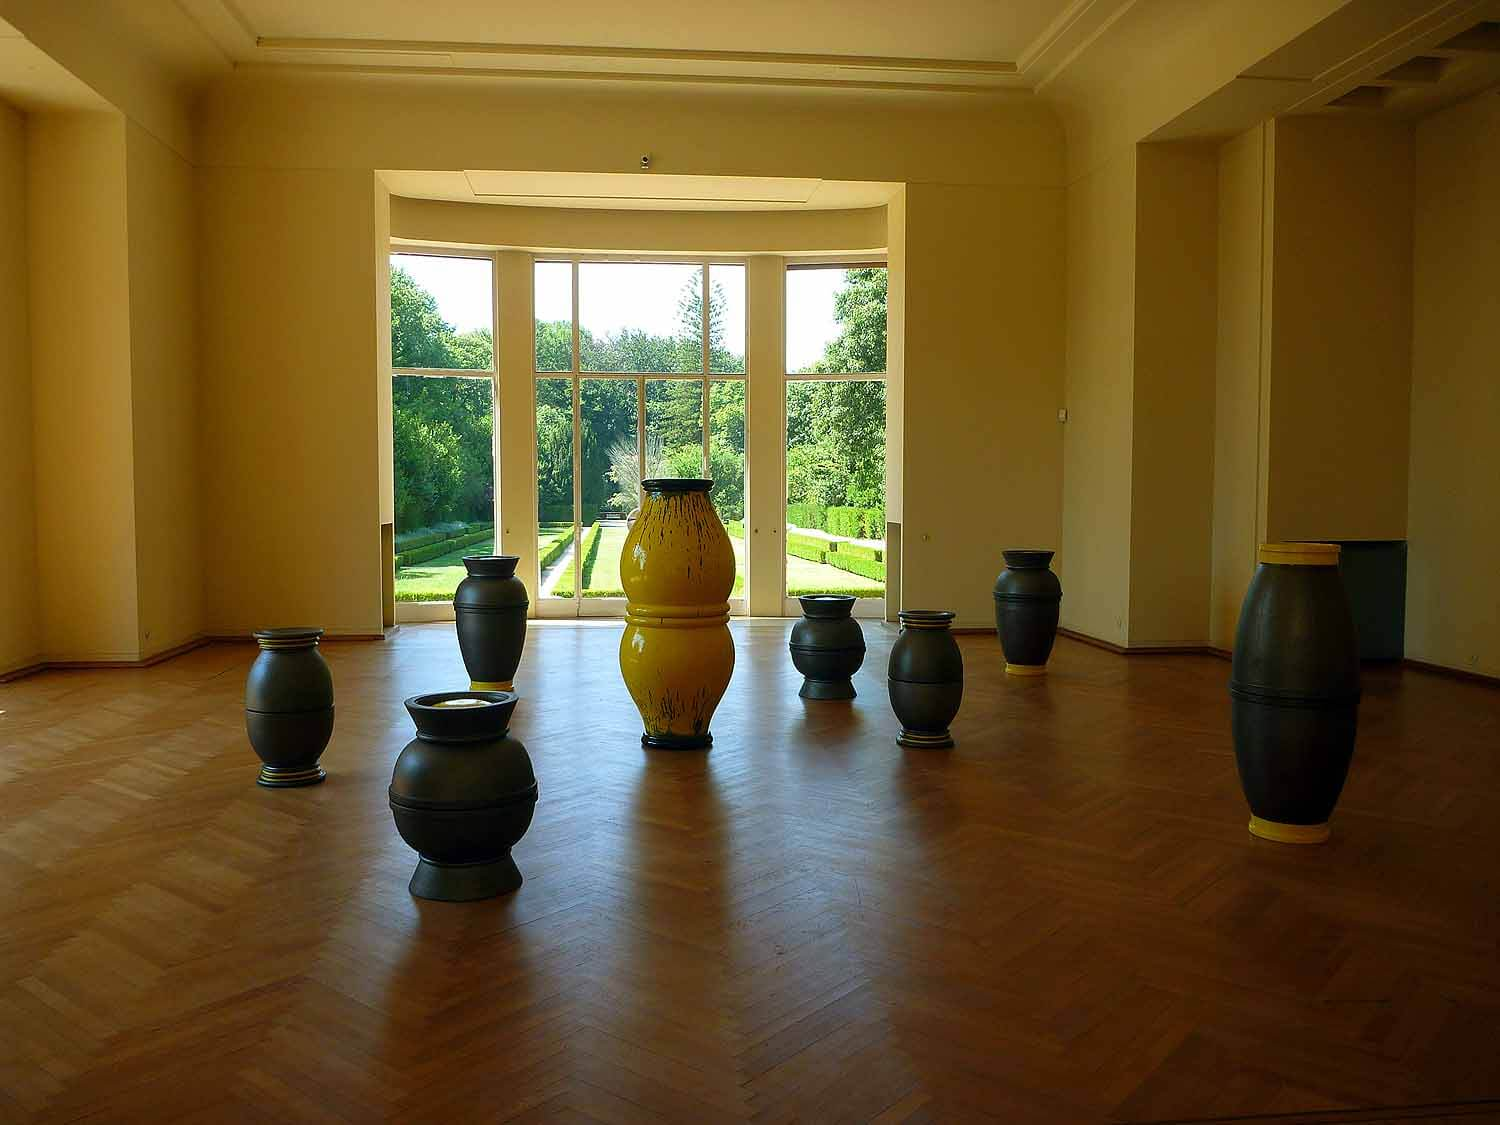 portugal-porto-oporto-museum-fundacao-foundation-serralves-modern-art-house-vase-display.JPG